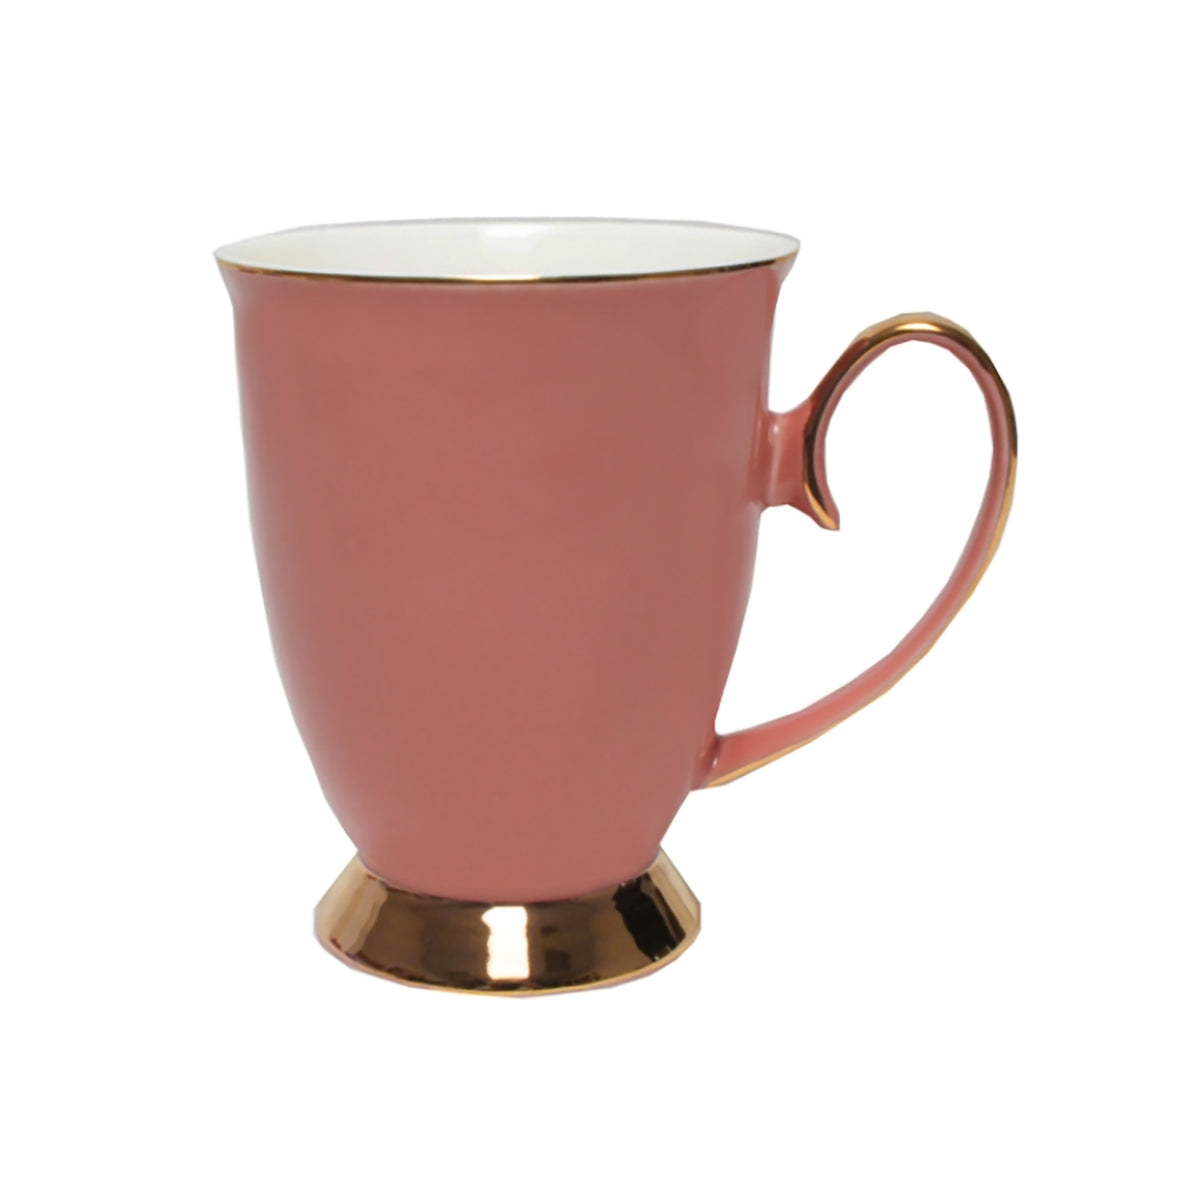 VINTAGE ROYALE MUG | OLD ROSE